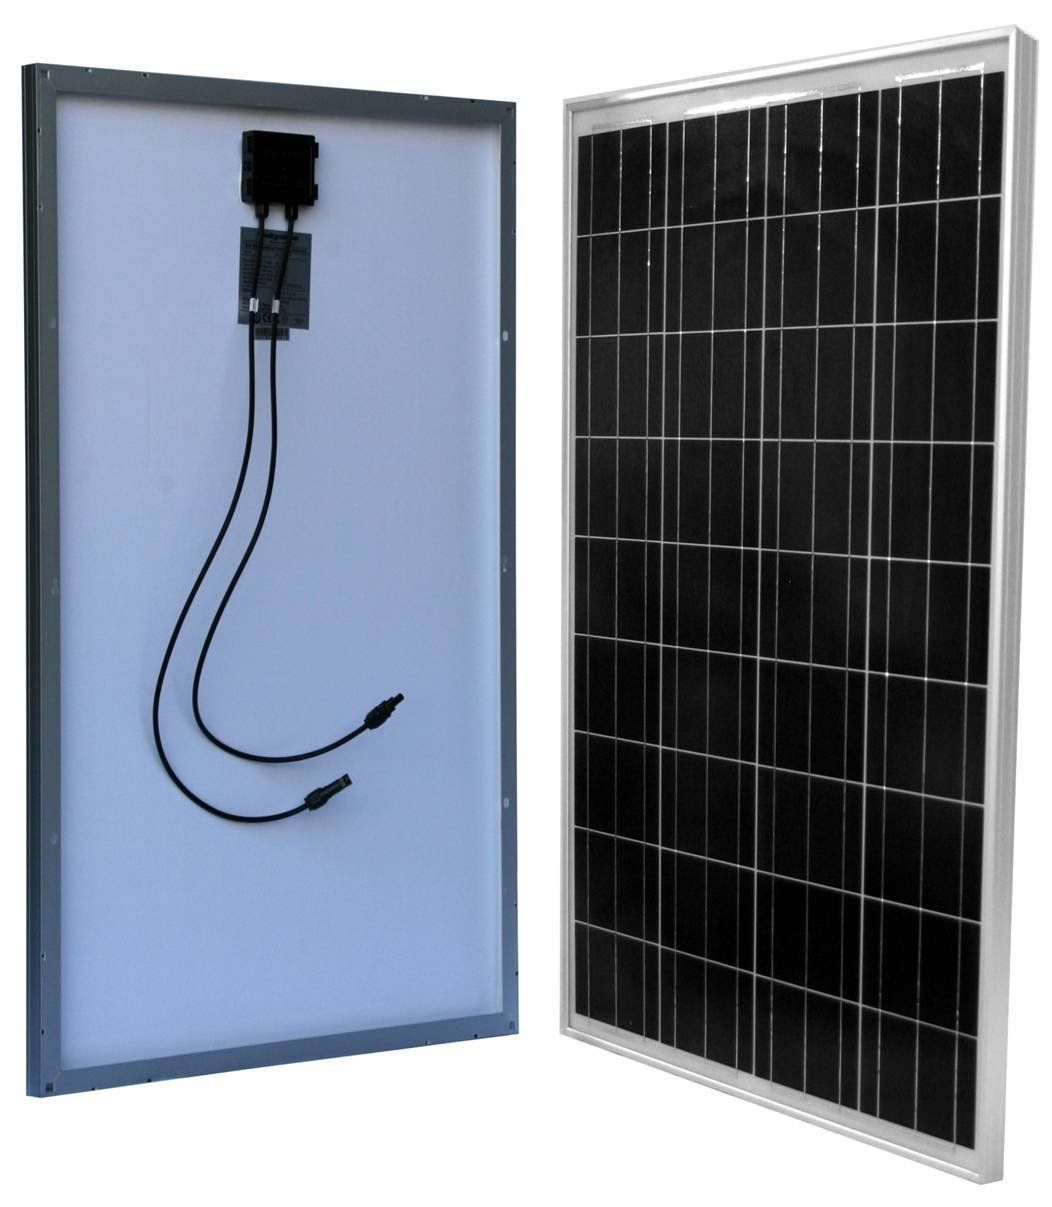 175w Solar Panel Made In The Usa Solar Panels Solar Energy Panels Solar Panel Battery